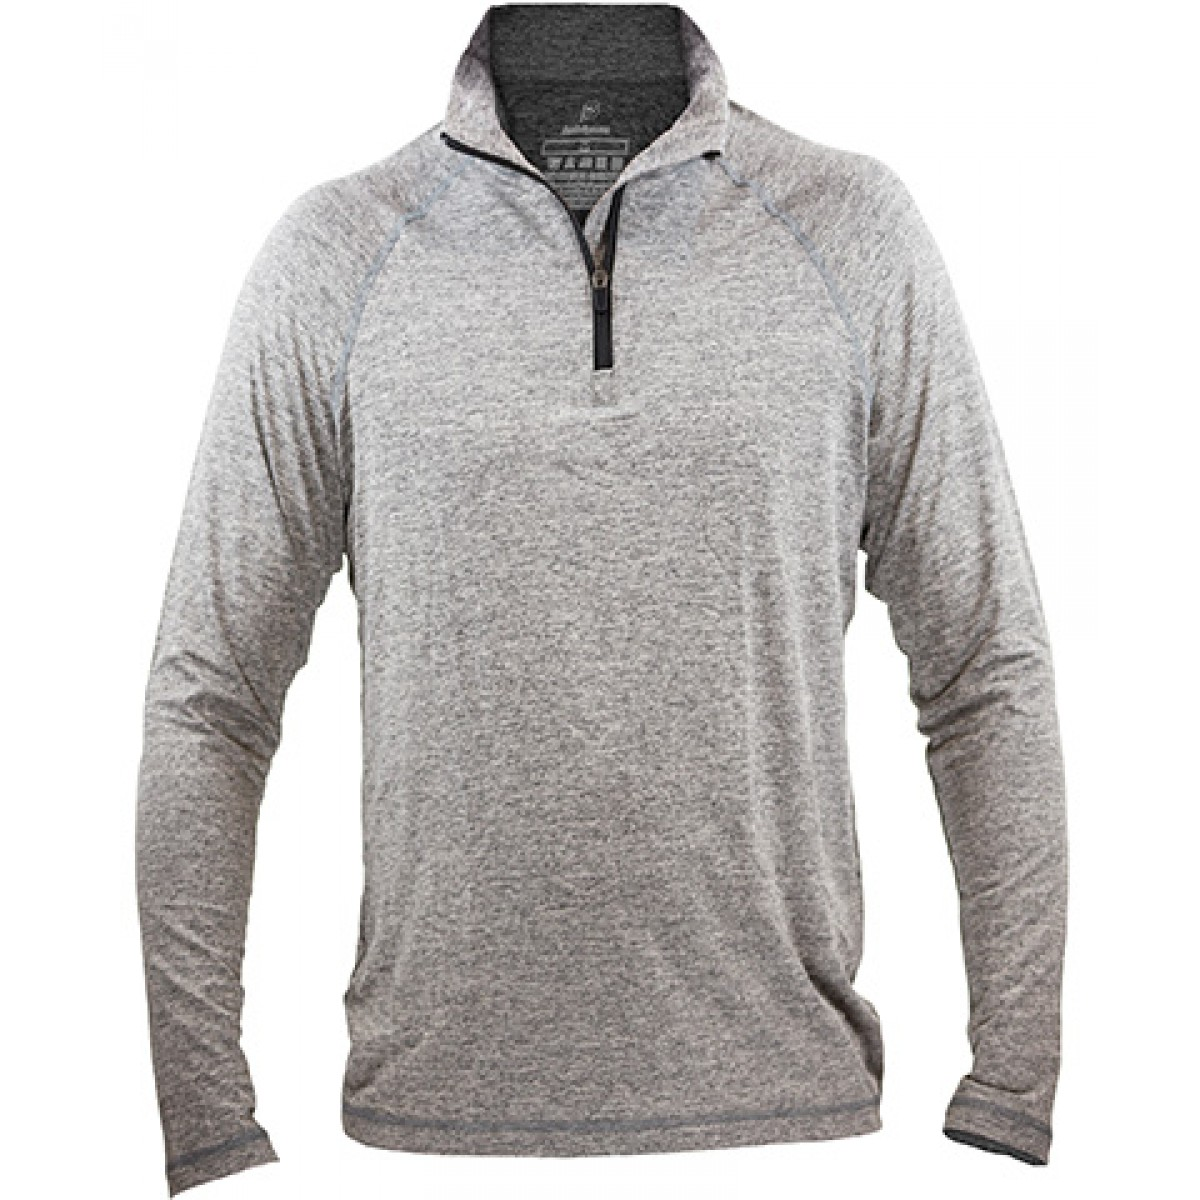 Fine Designs Blend 1/4-Zip Pullover-Gray -XS